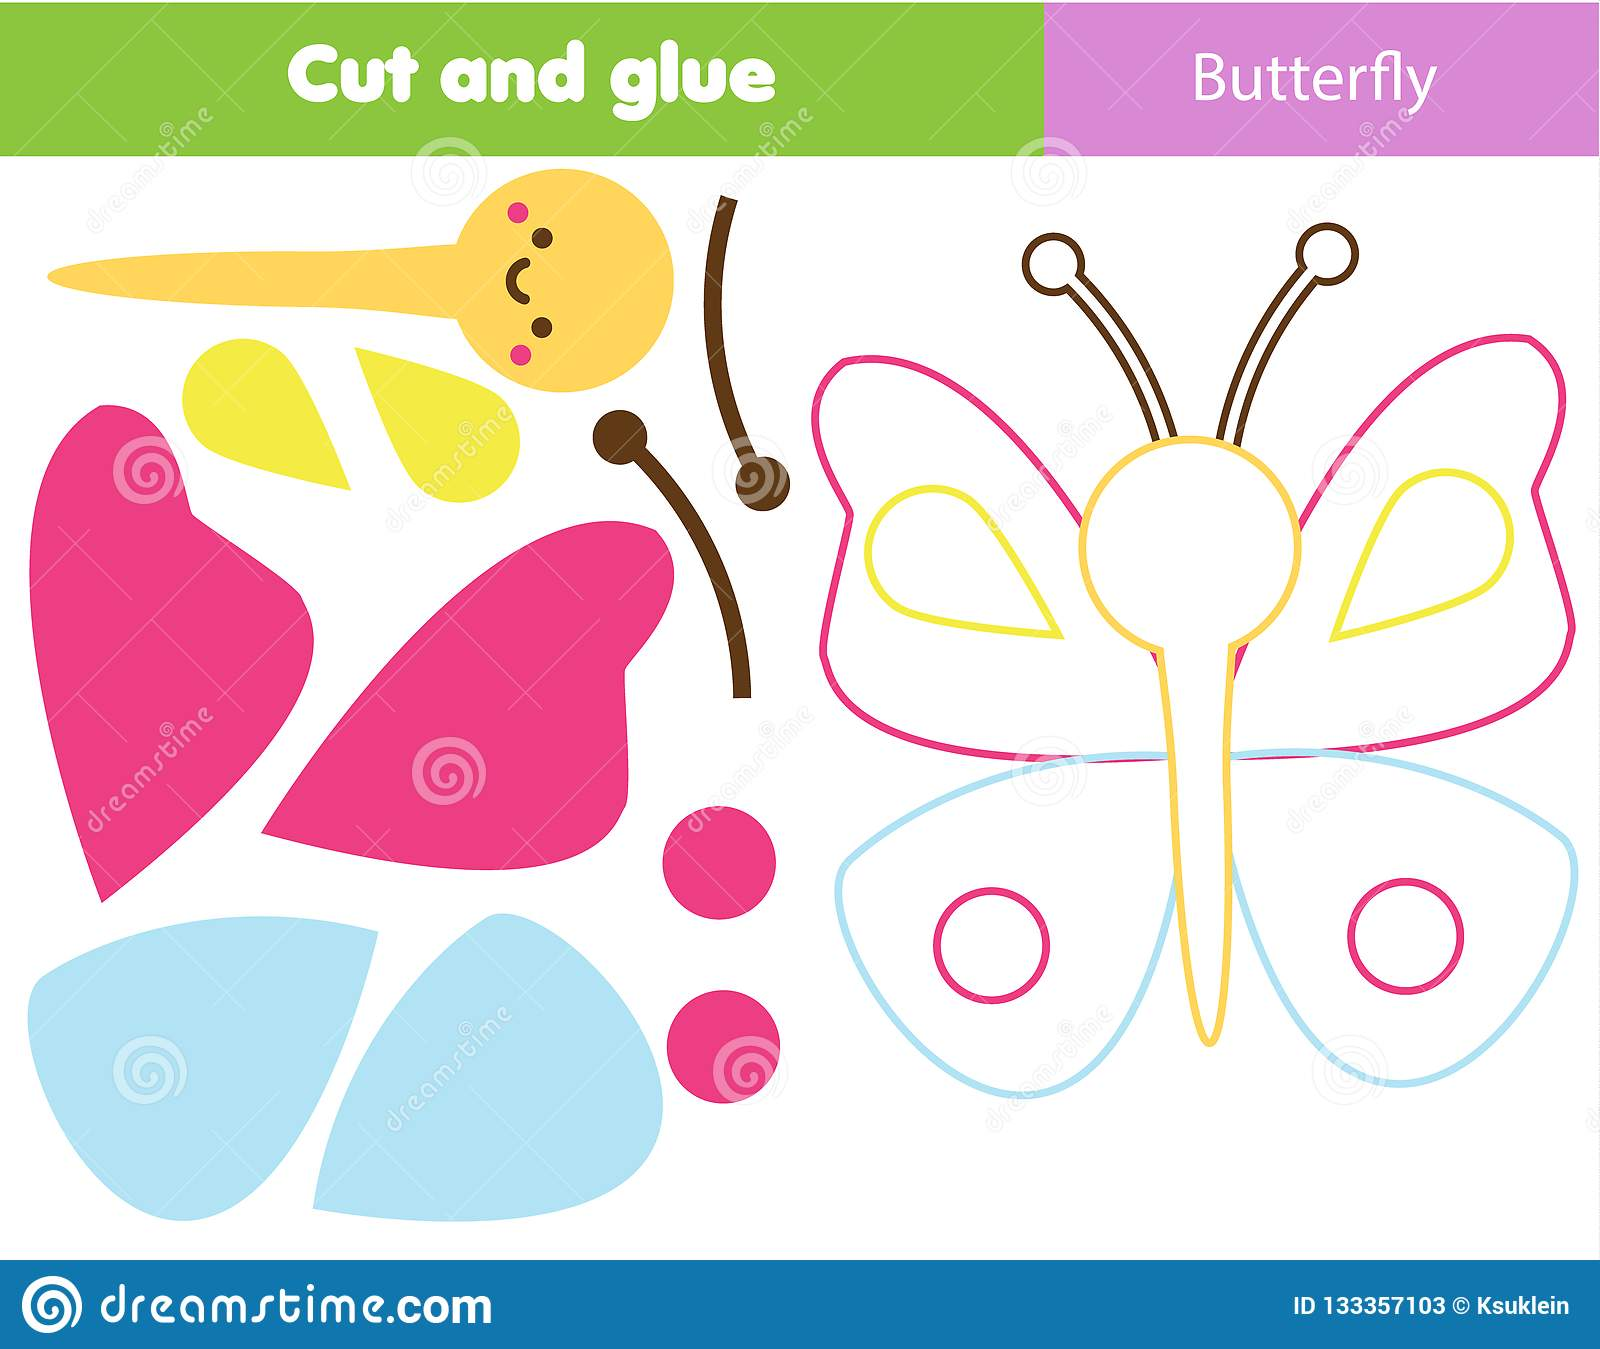 Children Educational Game Cut And Glue Make A Butterfly With Scissors Animals Theme Worksheet